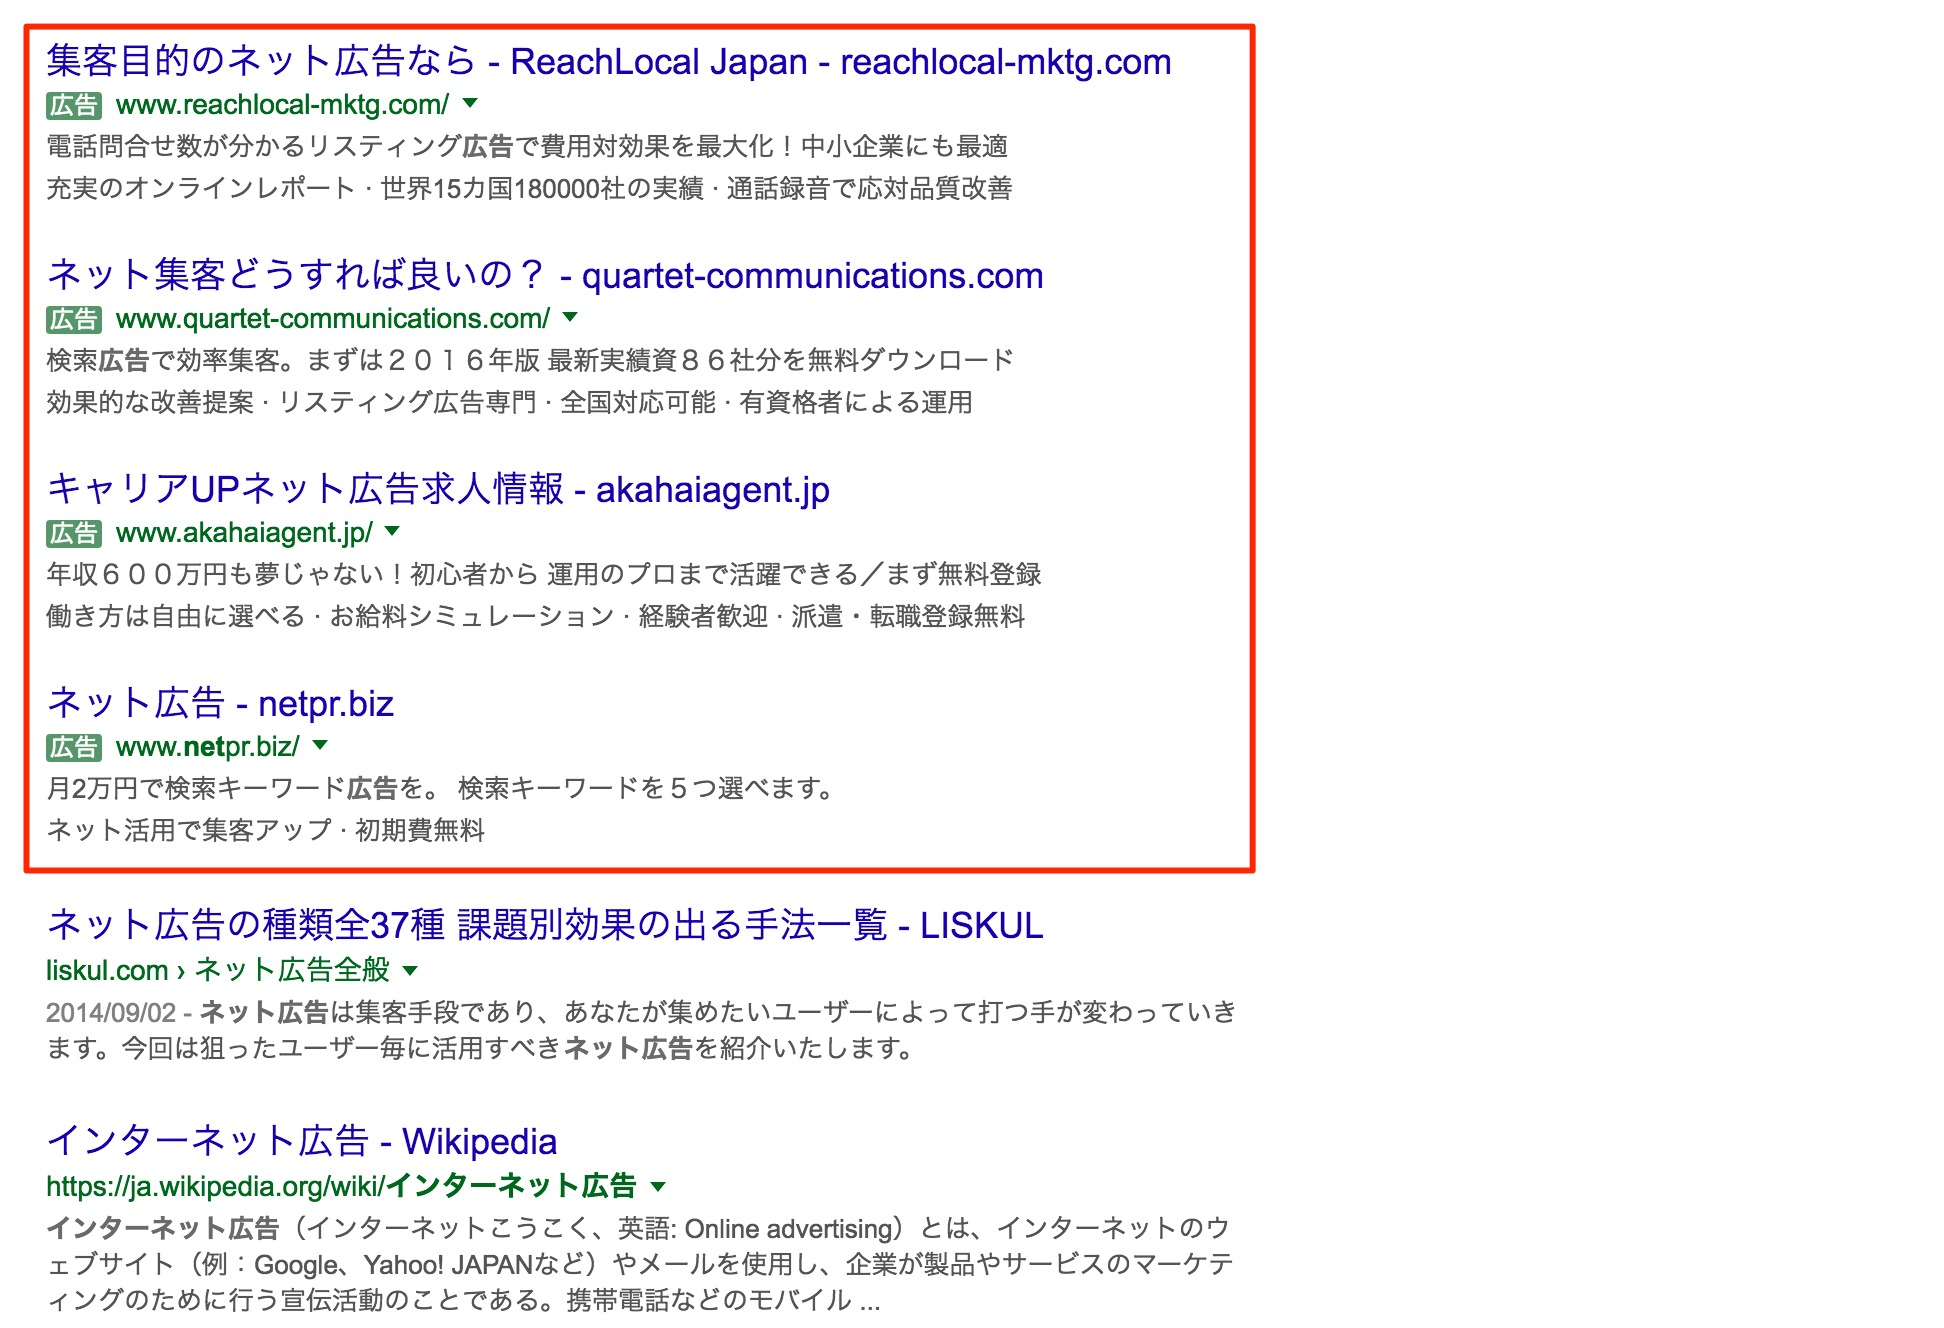 adwords01.png